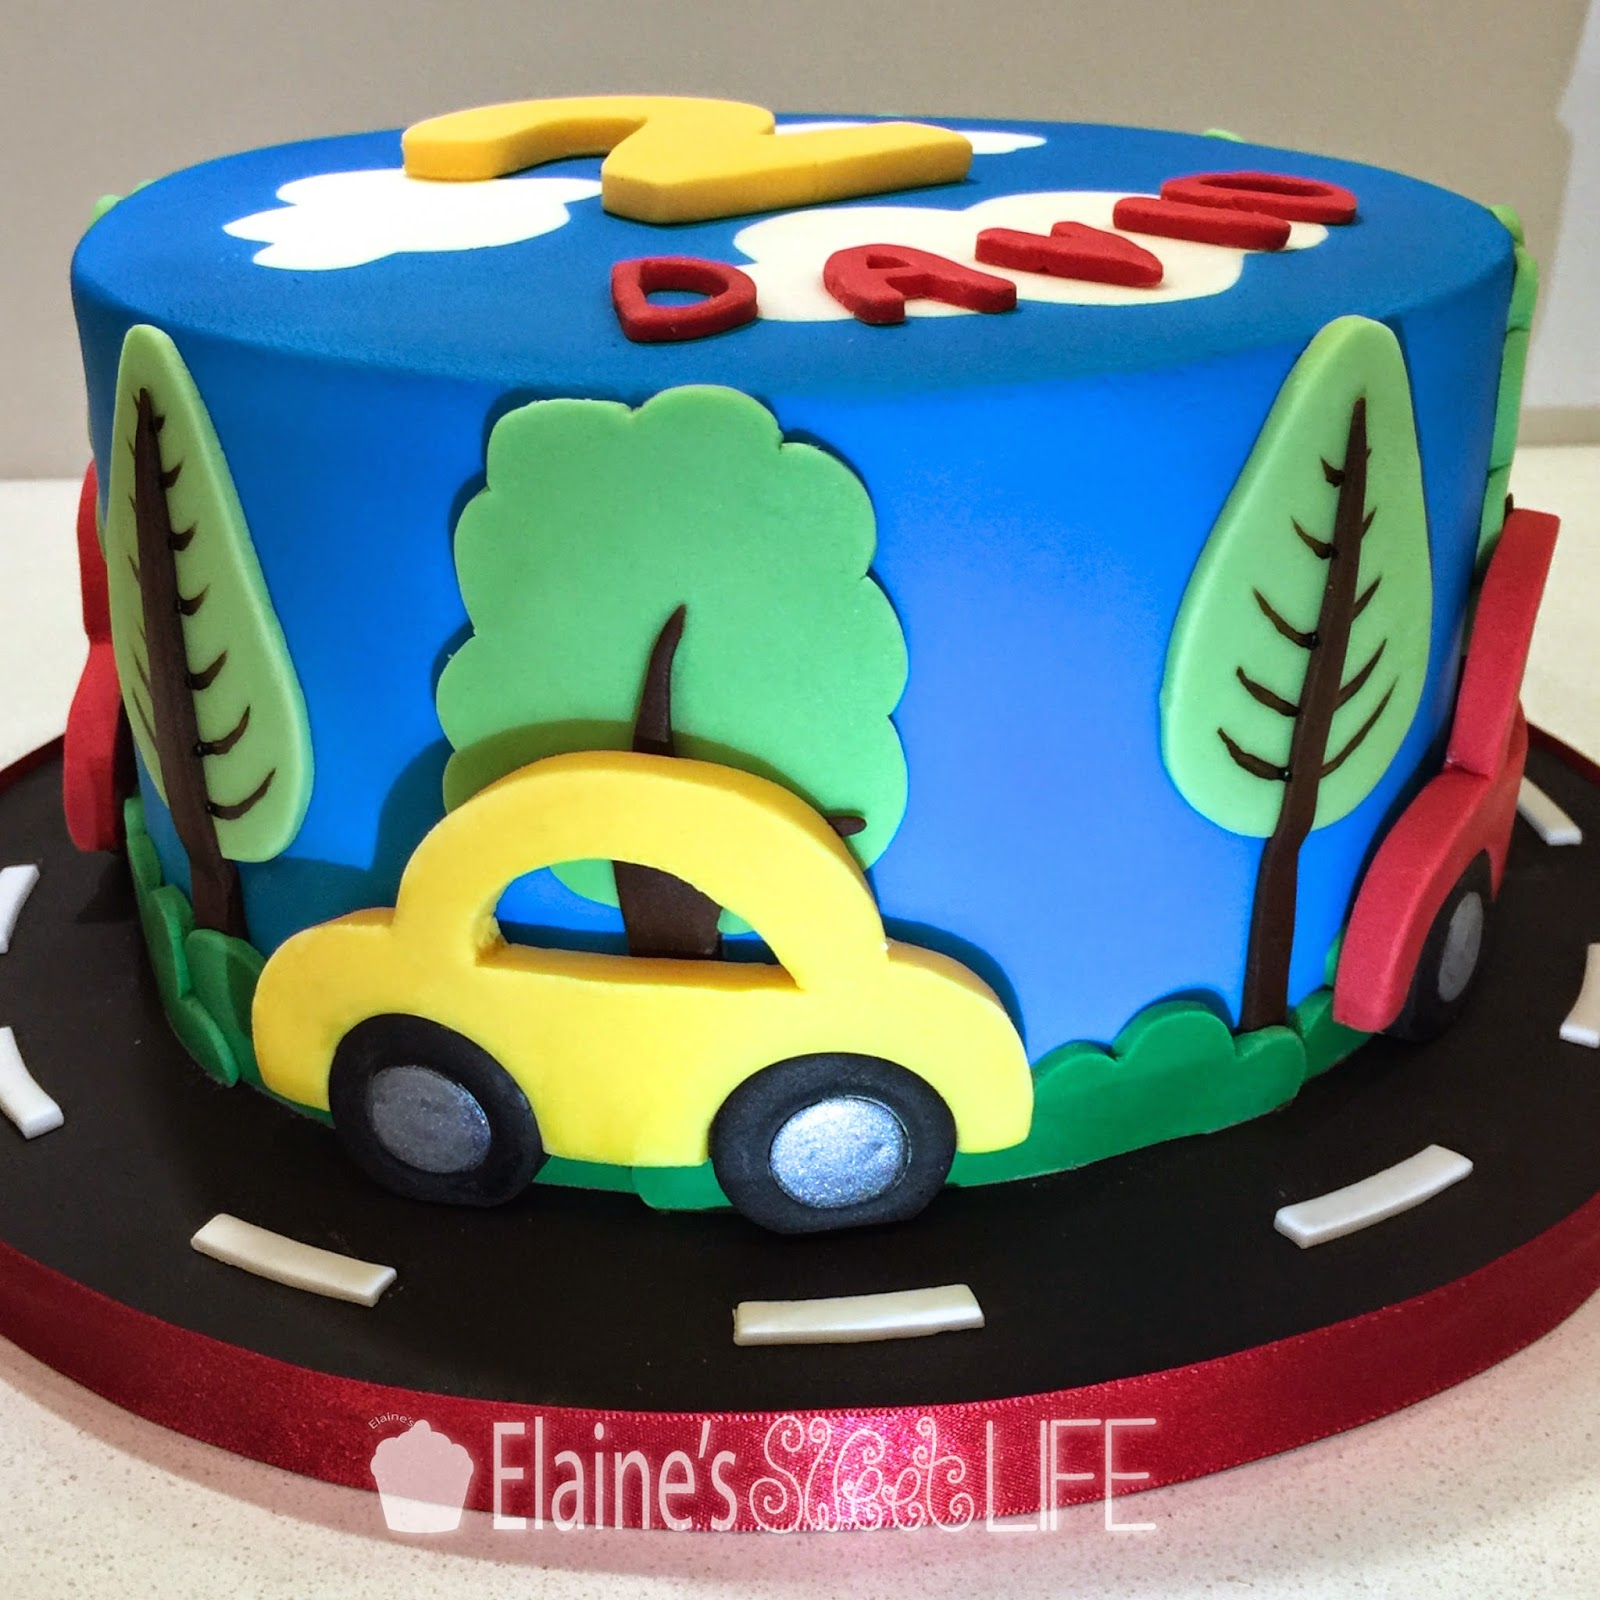 Car Cake Images Download : Elaine s Sweet Life: How to Decorate a Car Cake {Tutorial}